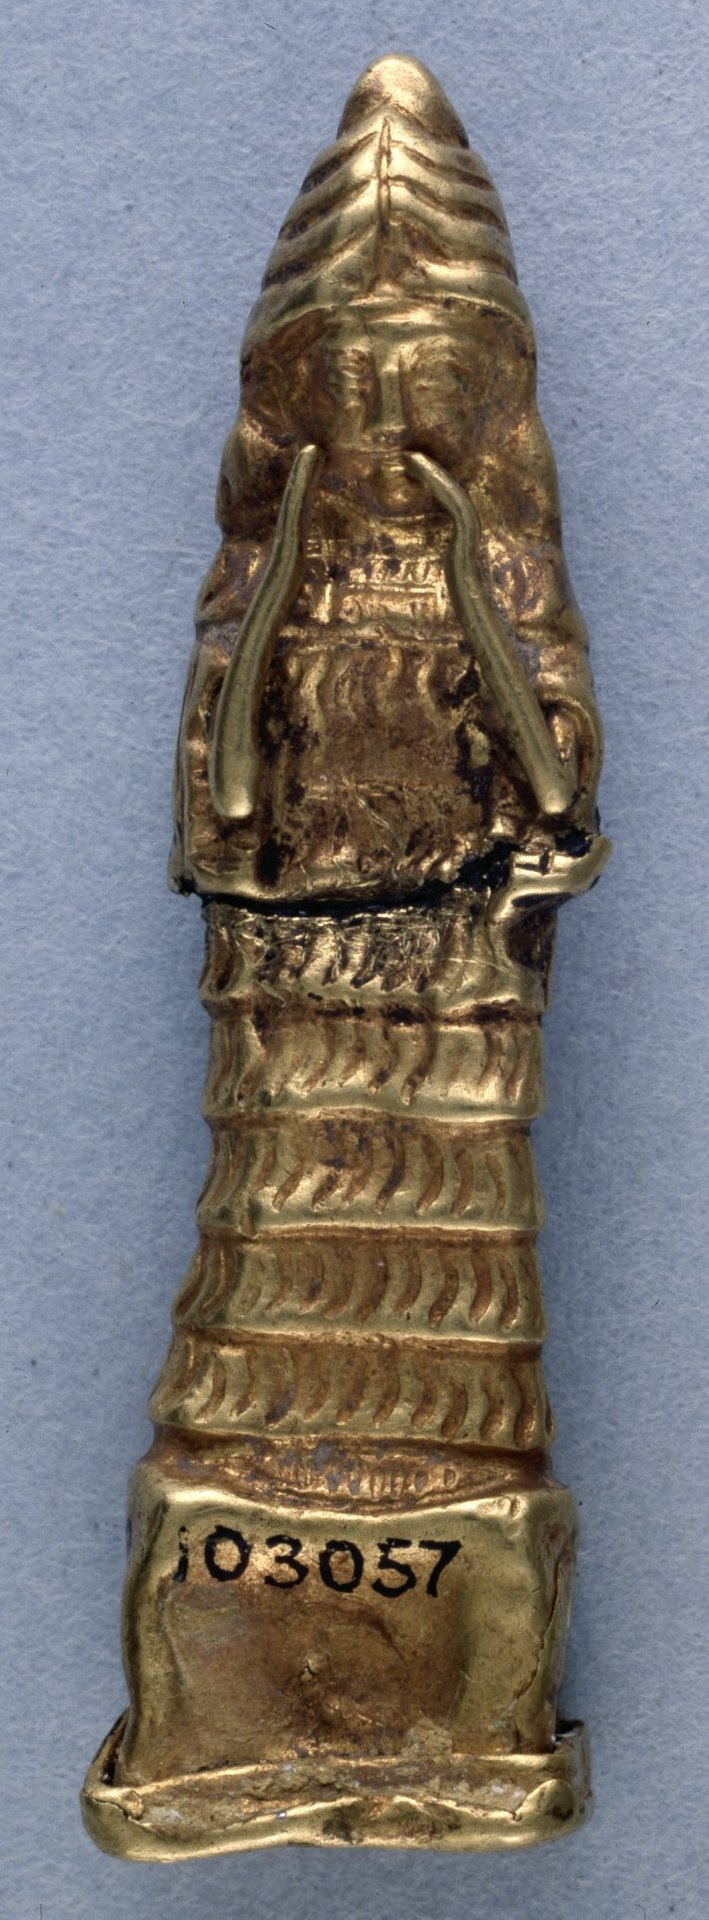 2 - golden statue of Lama - Ninsun, depicted mostly with mixed-breed sons, Inanna, & Nannar